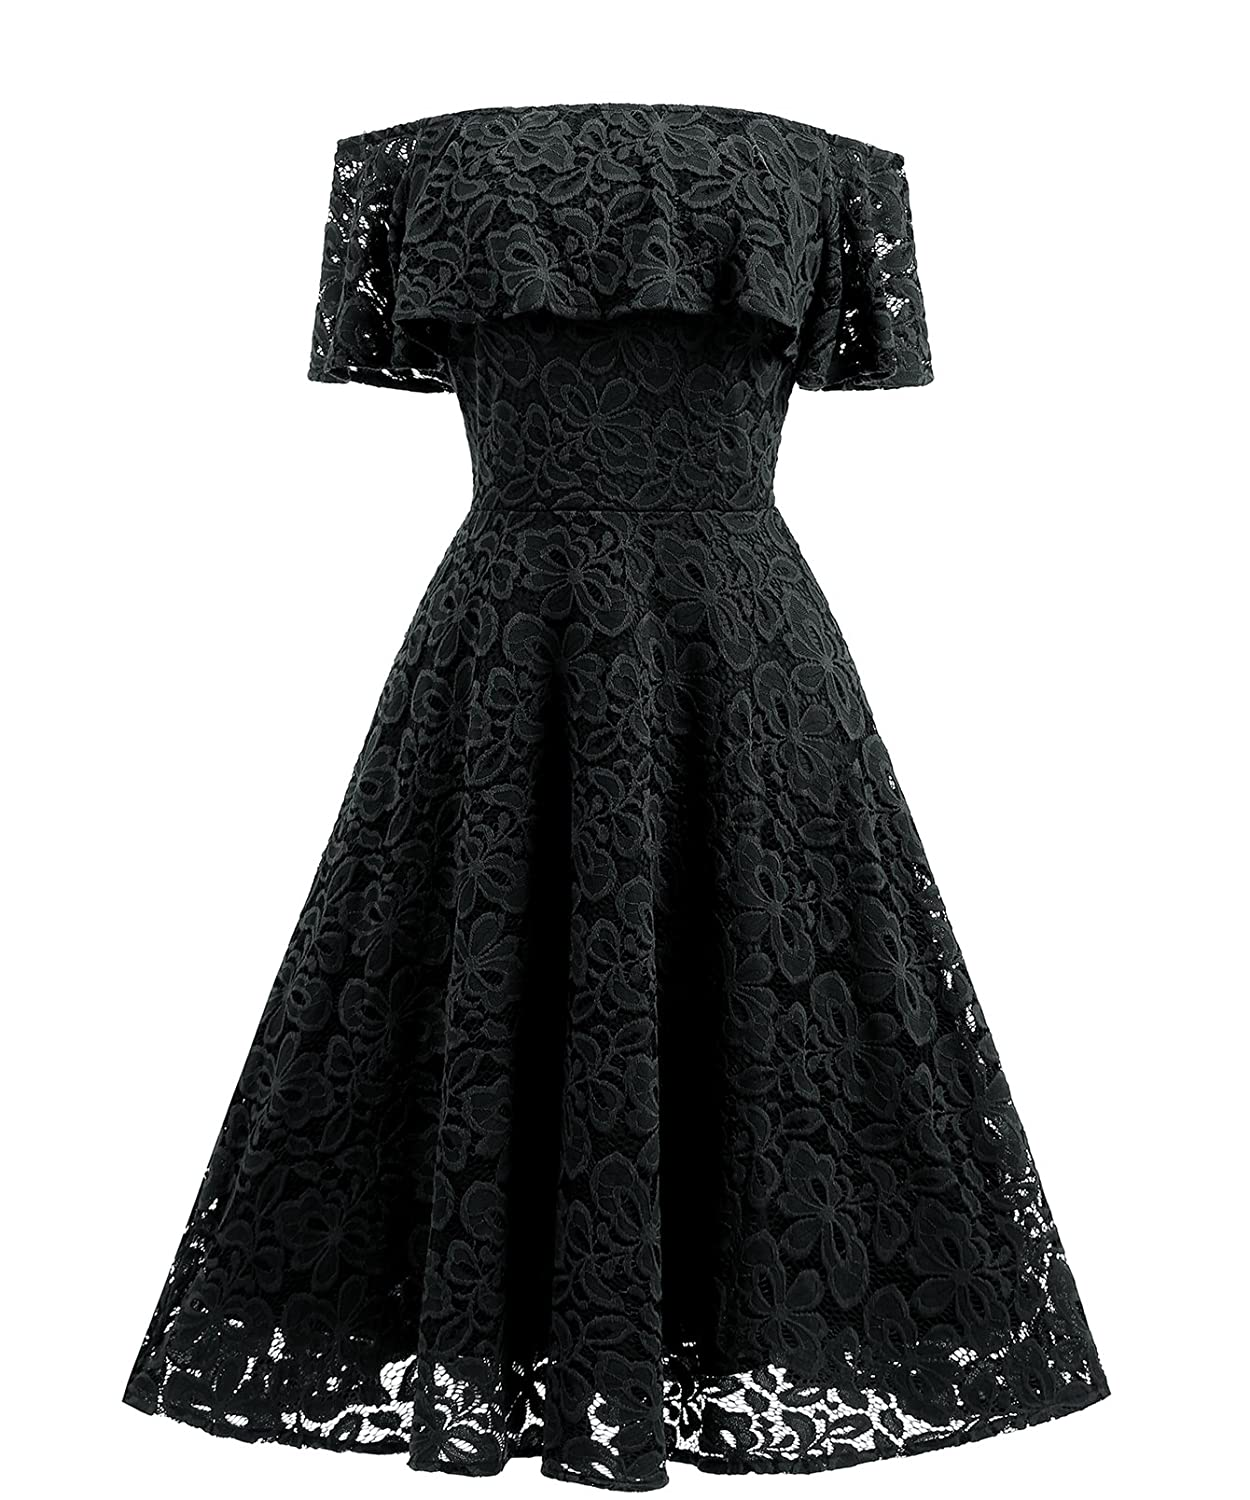 3ff75122107e Dear friends, please note that this dress only sold by Adodress, if you buy  the dress from the store which is following us, the quality of the dress  can not ...